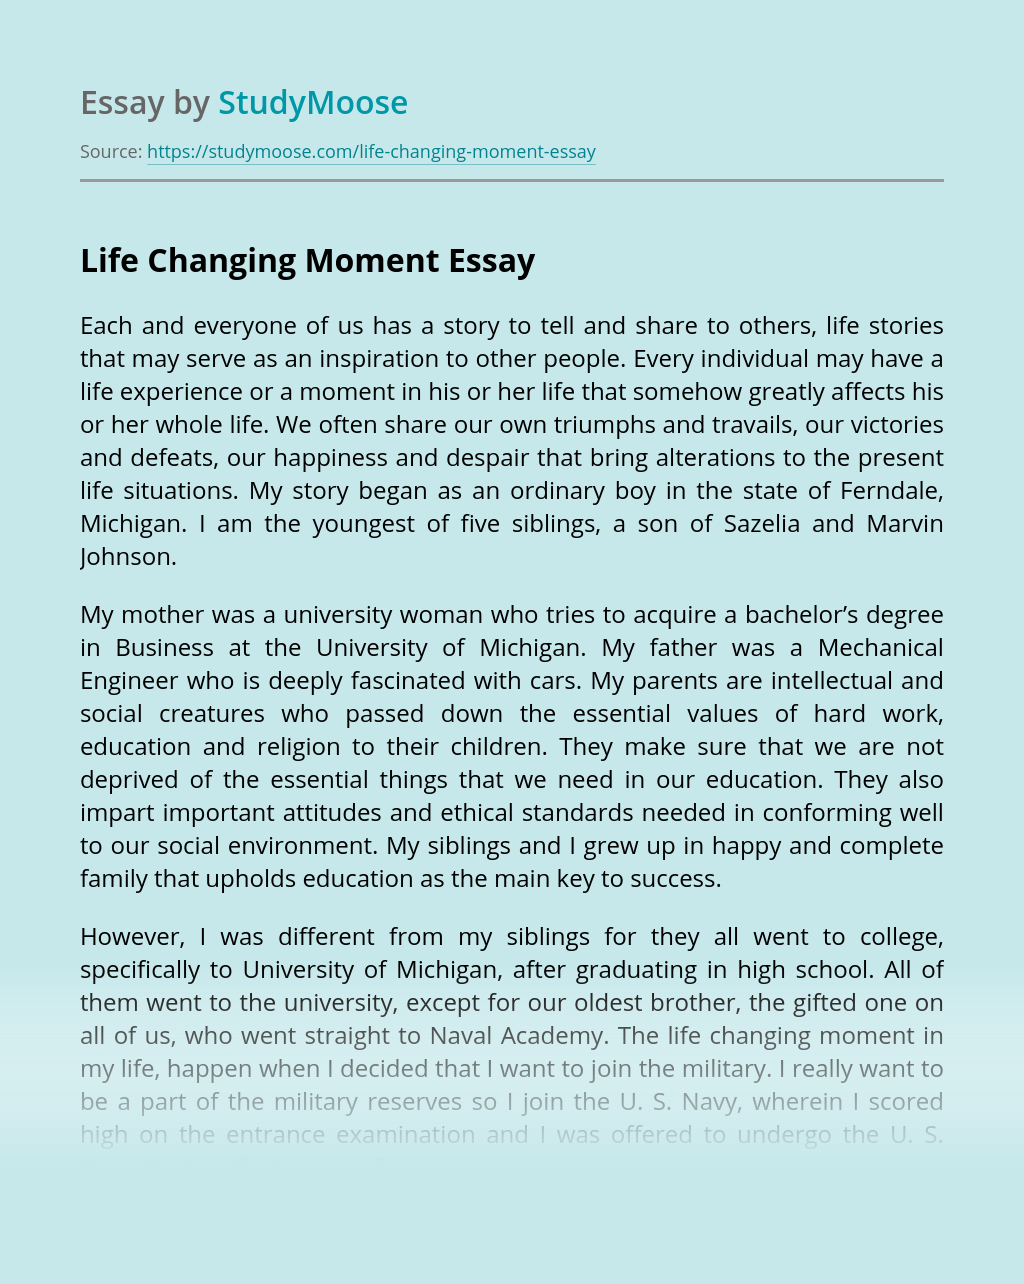 Life changing moment essay